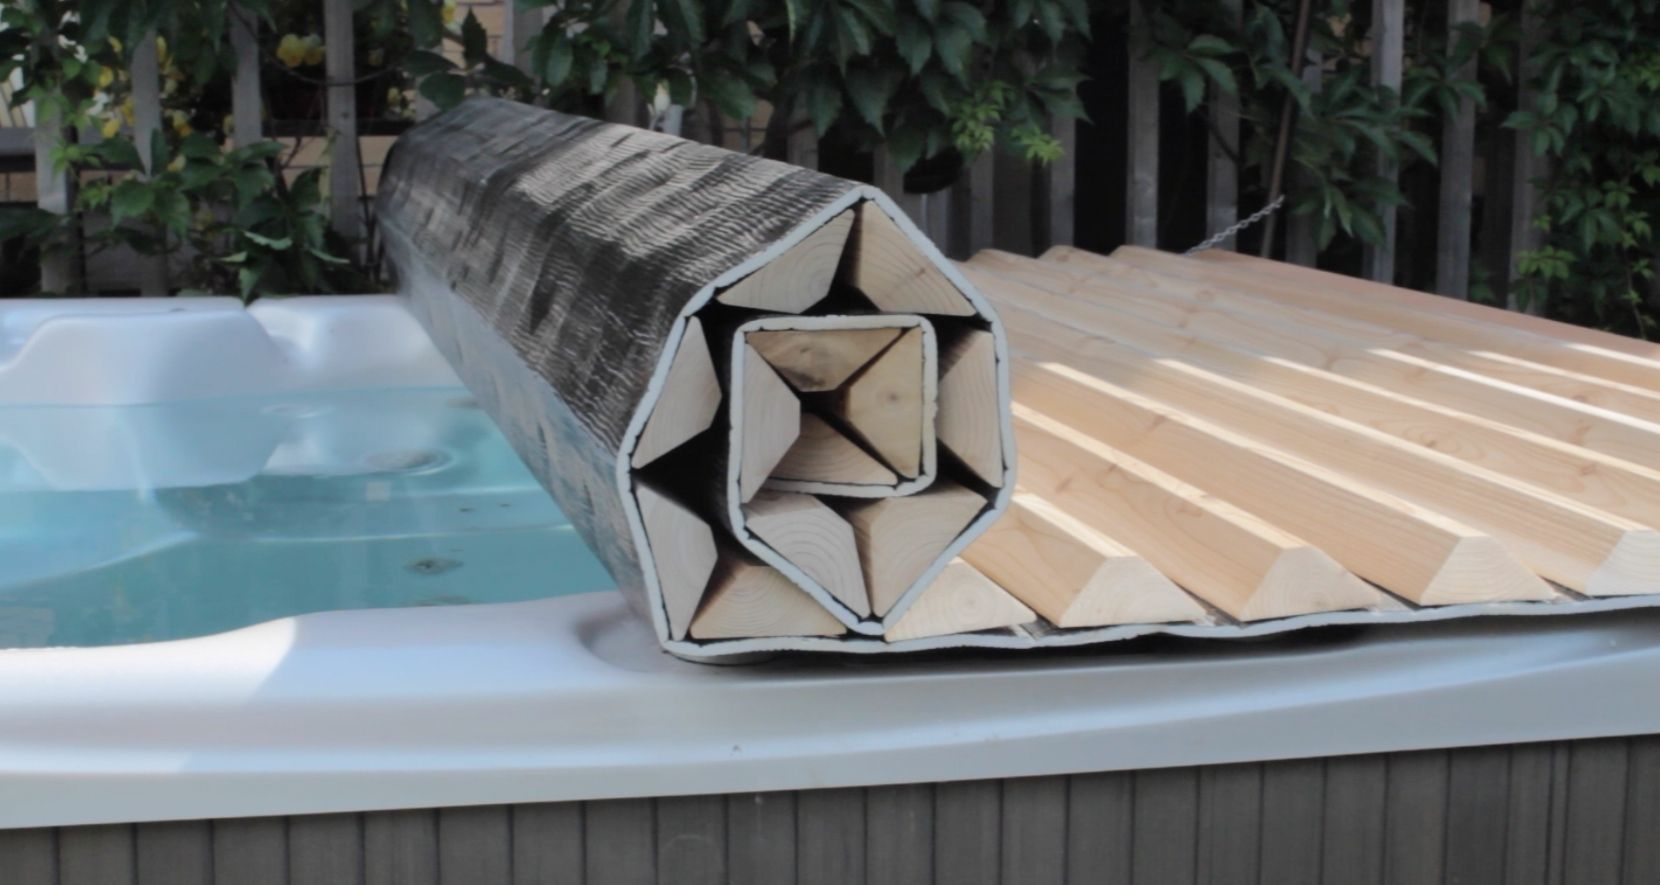 Jacuzzi Pool Covers We Can Custom Make A Roll Up Hot Tub Cover For Just About